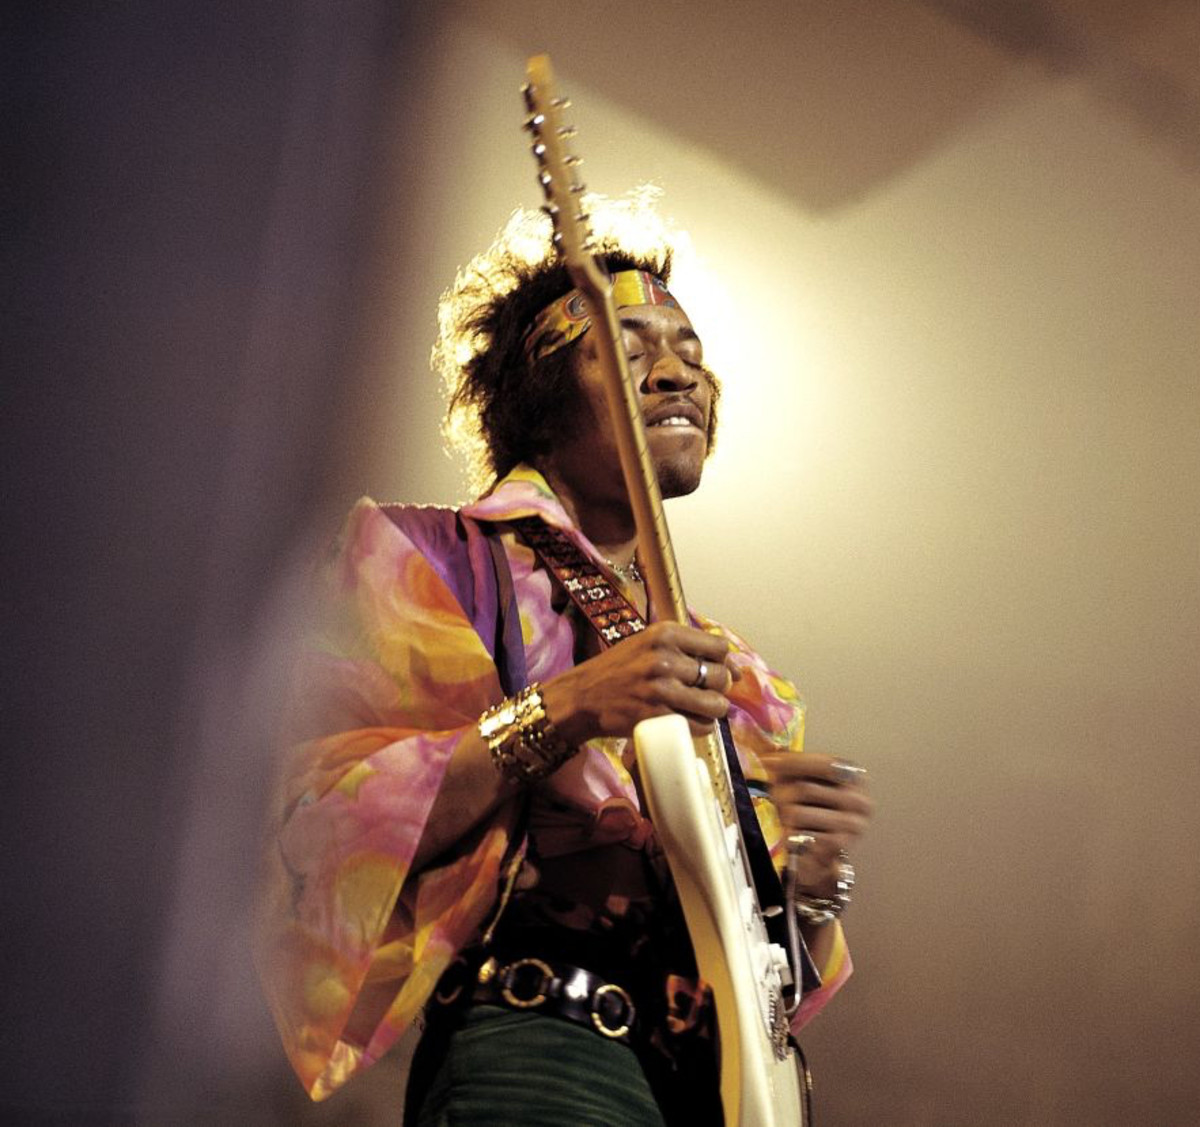 Jimi Hendrix in 1969